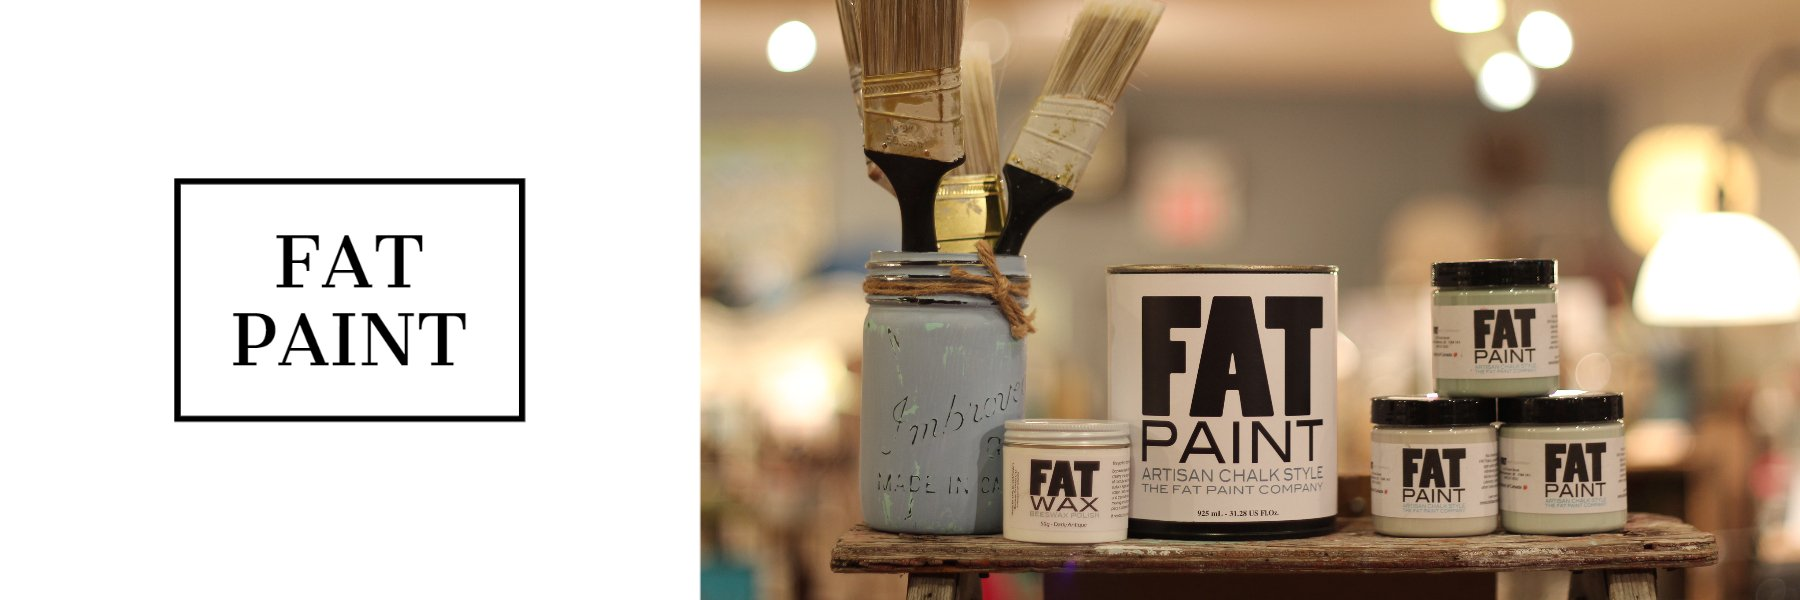 FAT Paint Products